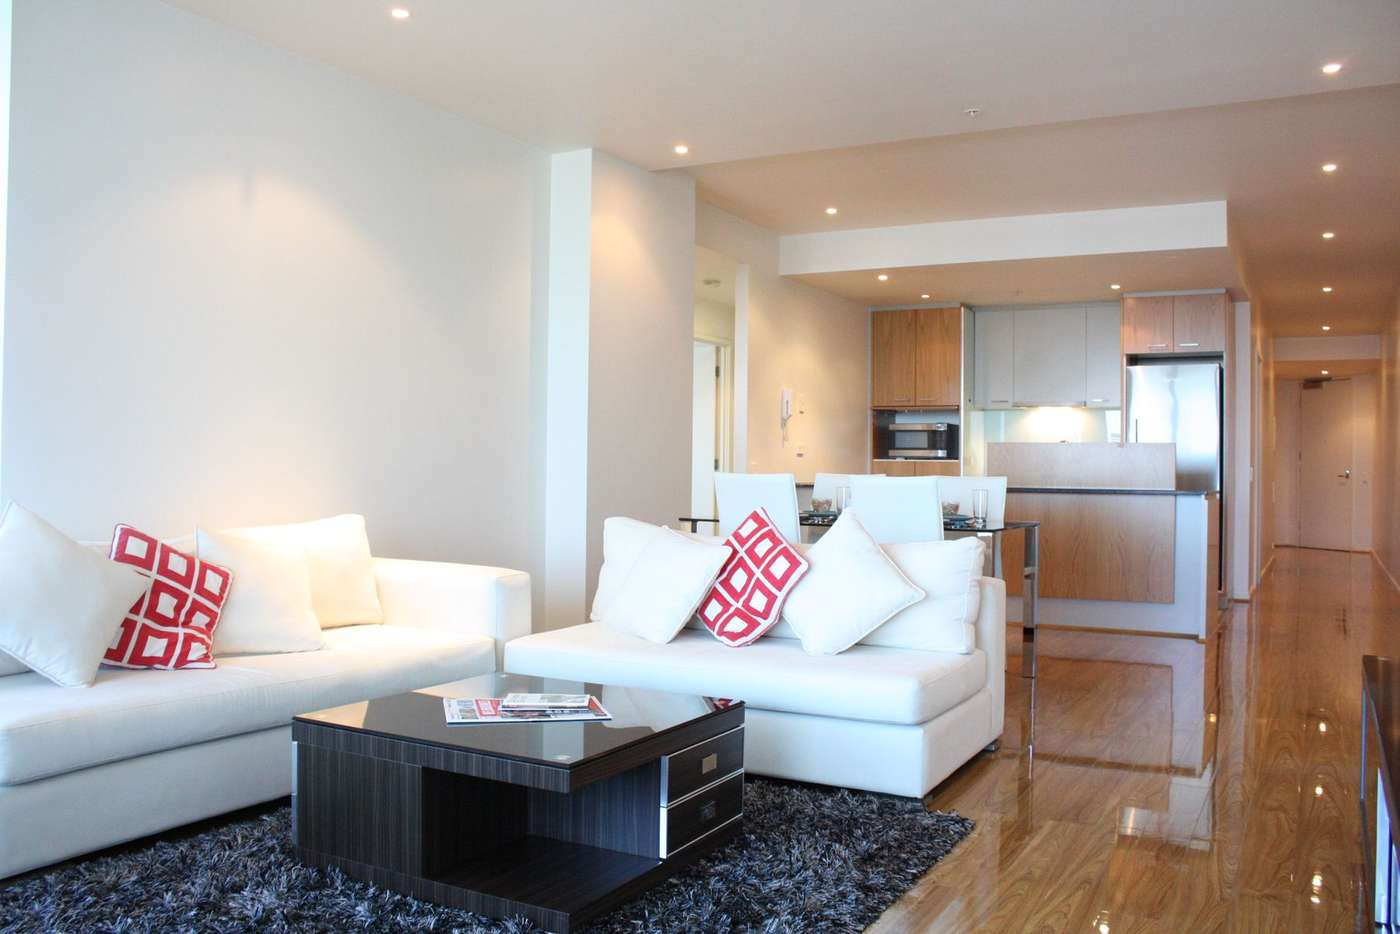 Main view of Homely apartment listing, 1702/15 Caravel Lane, Docklands VIC 3008